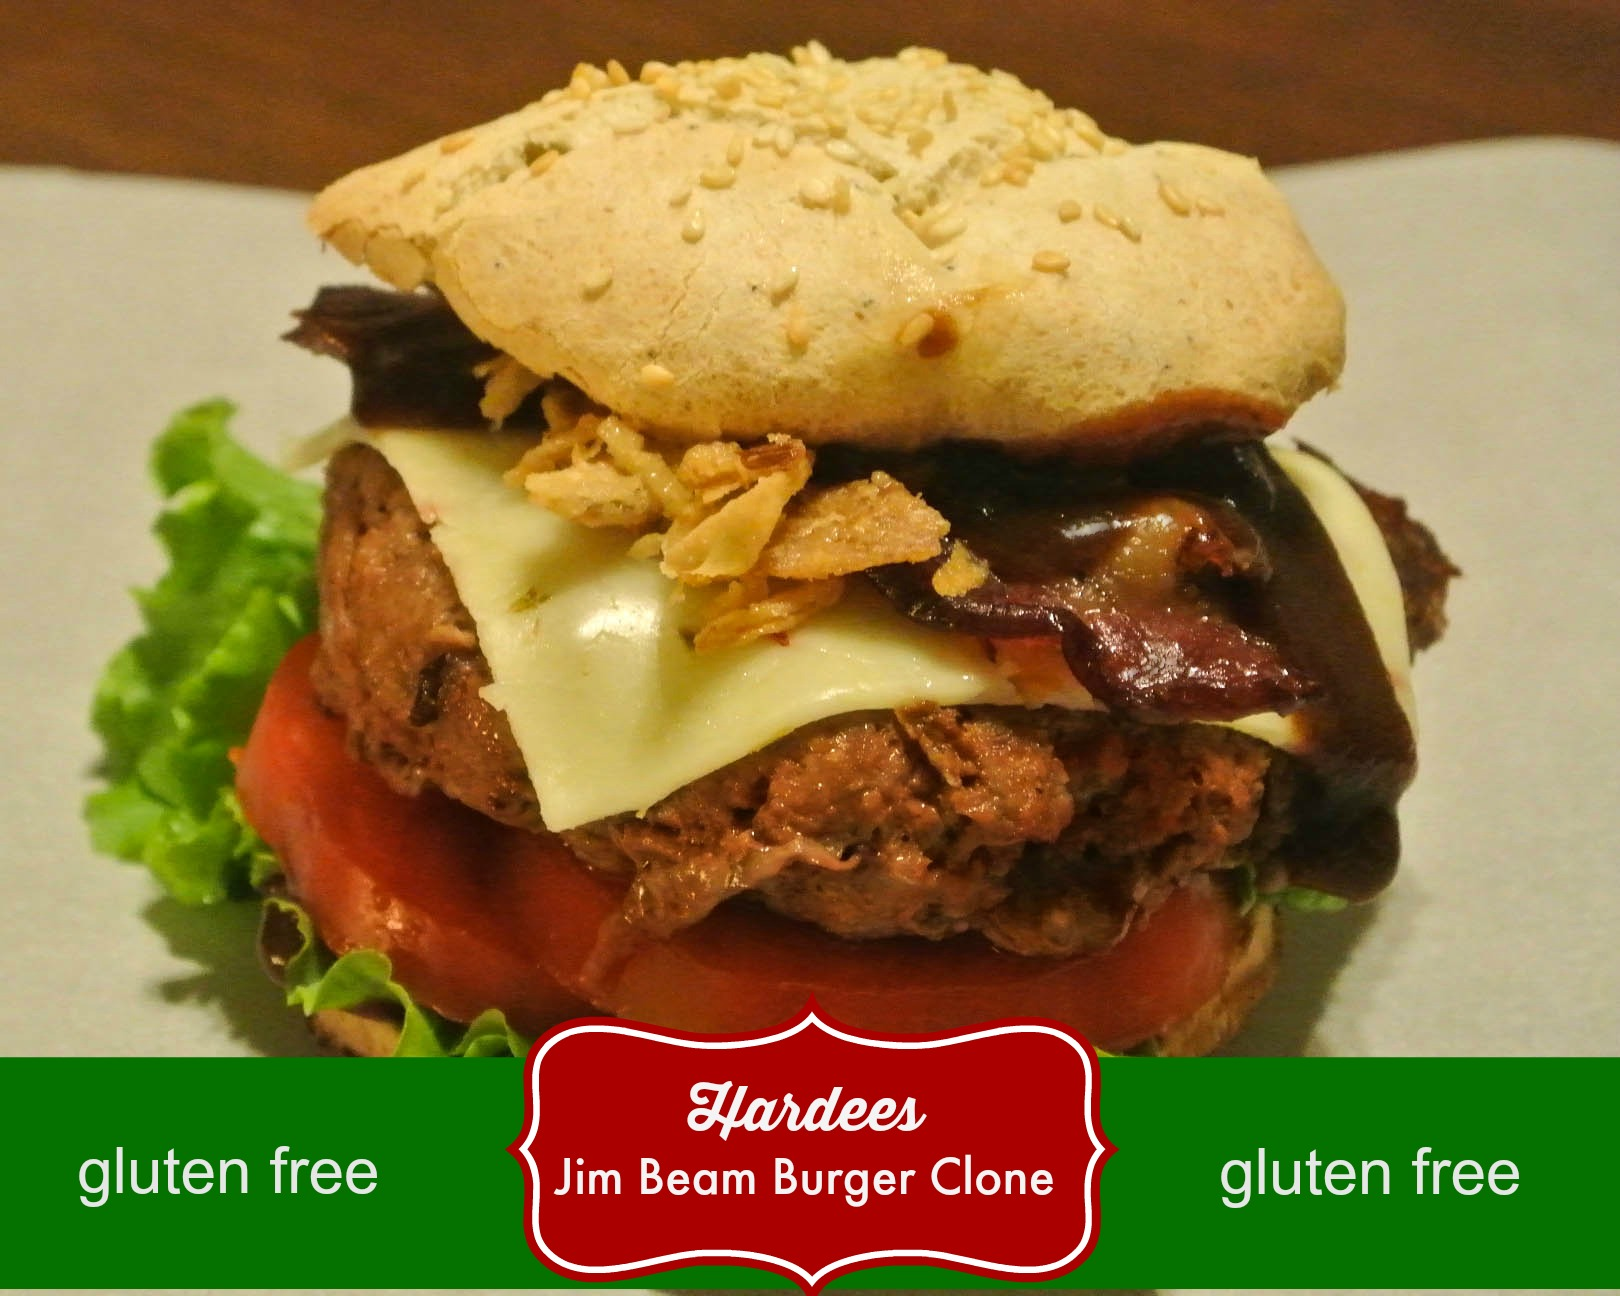 hardees jim beam burger clone 2